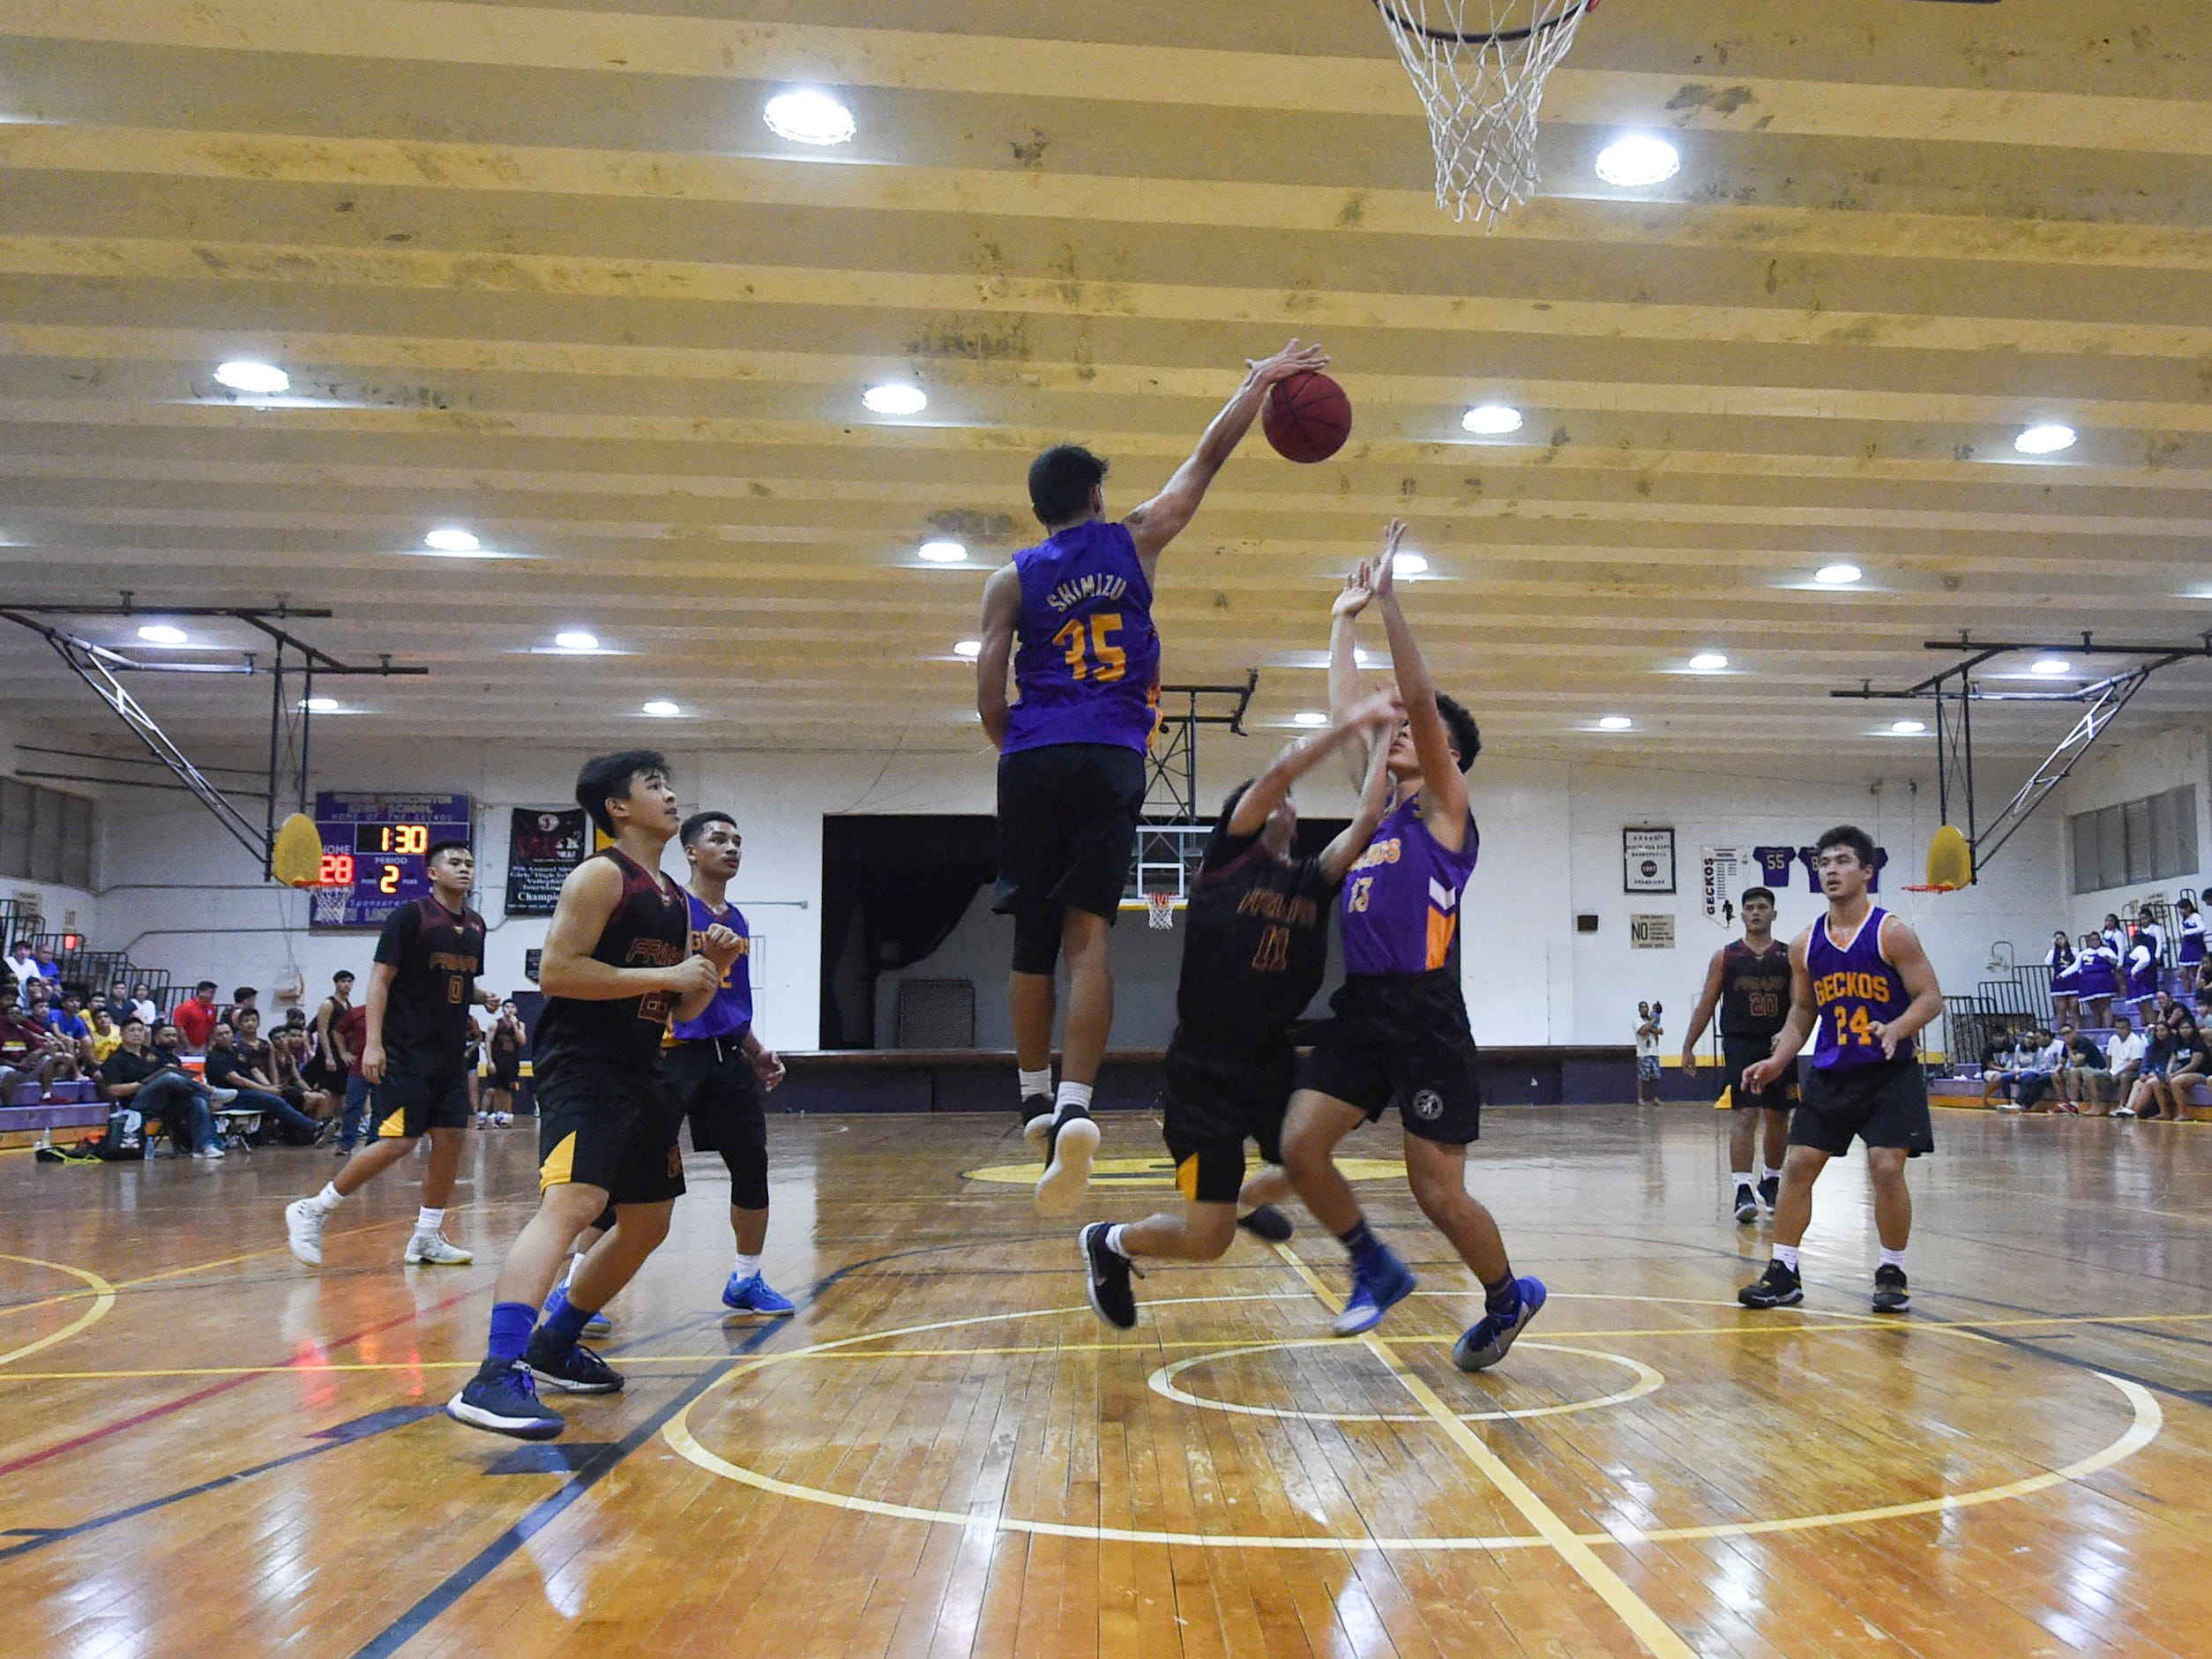 George Washington's Ron Shimizu (35) rises for a block attempt against the Friars during their Independent Interscholastic Athletic Association of Guam Boys' Basketball game at the GW High School gym, Jan. 19, 2019. The Friars came through with a 52-69 comeback victory over the Geckos after trailing in the first half.